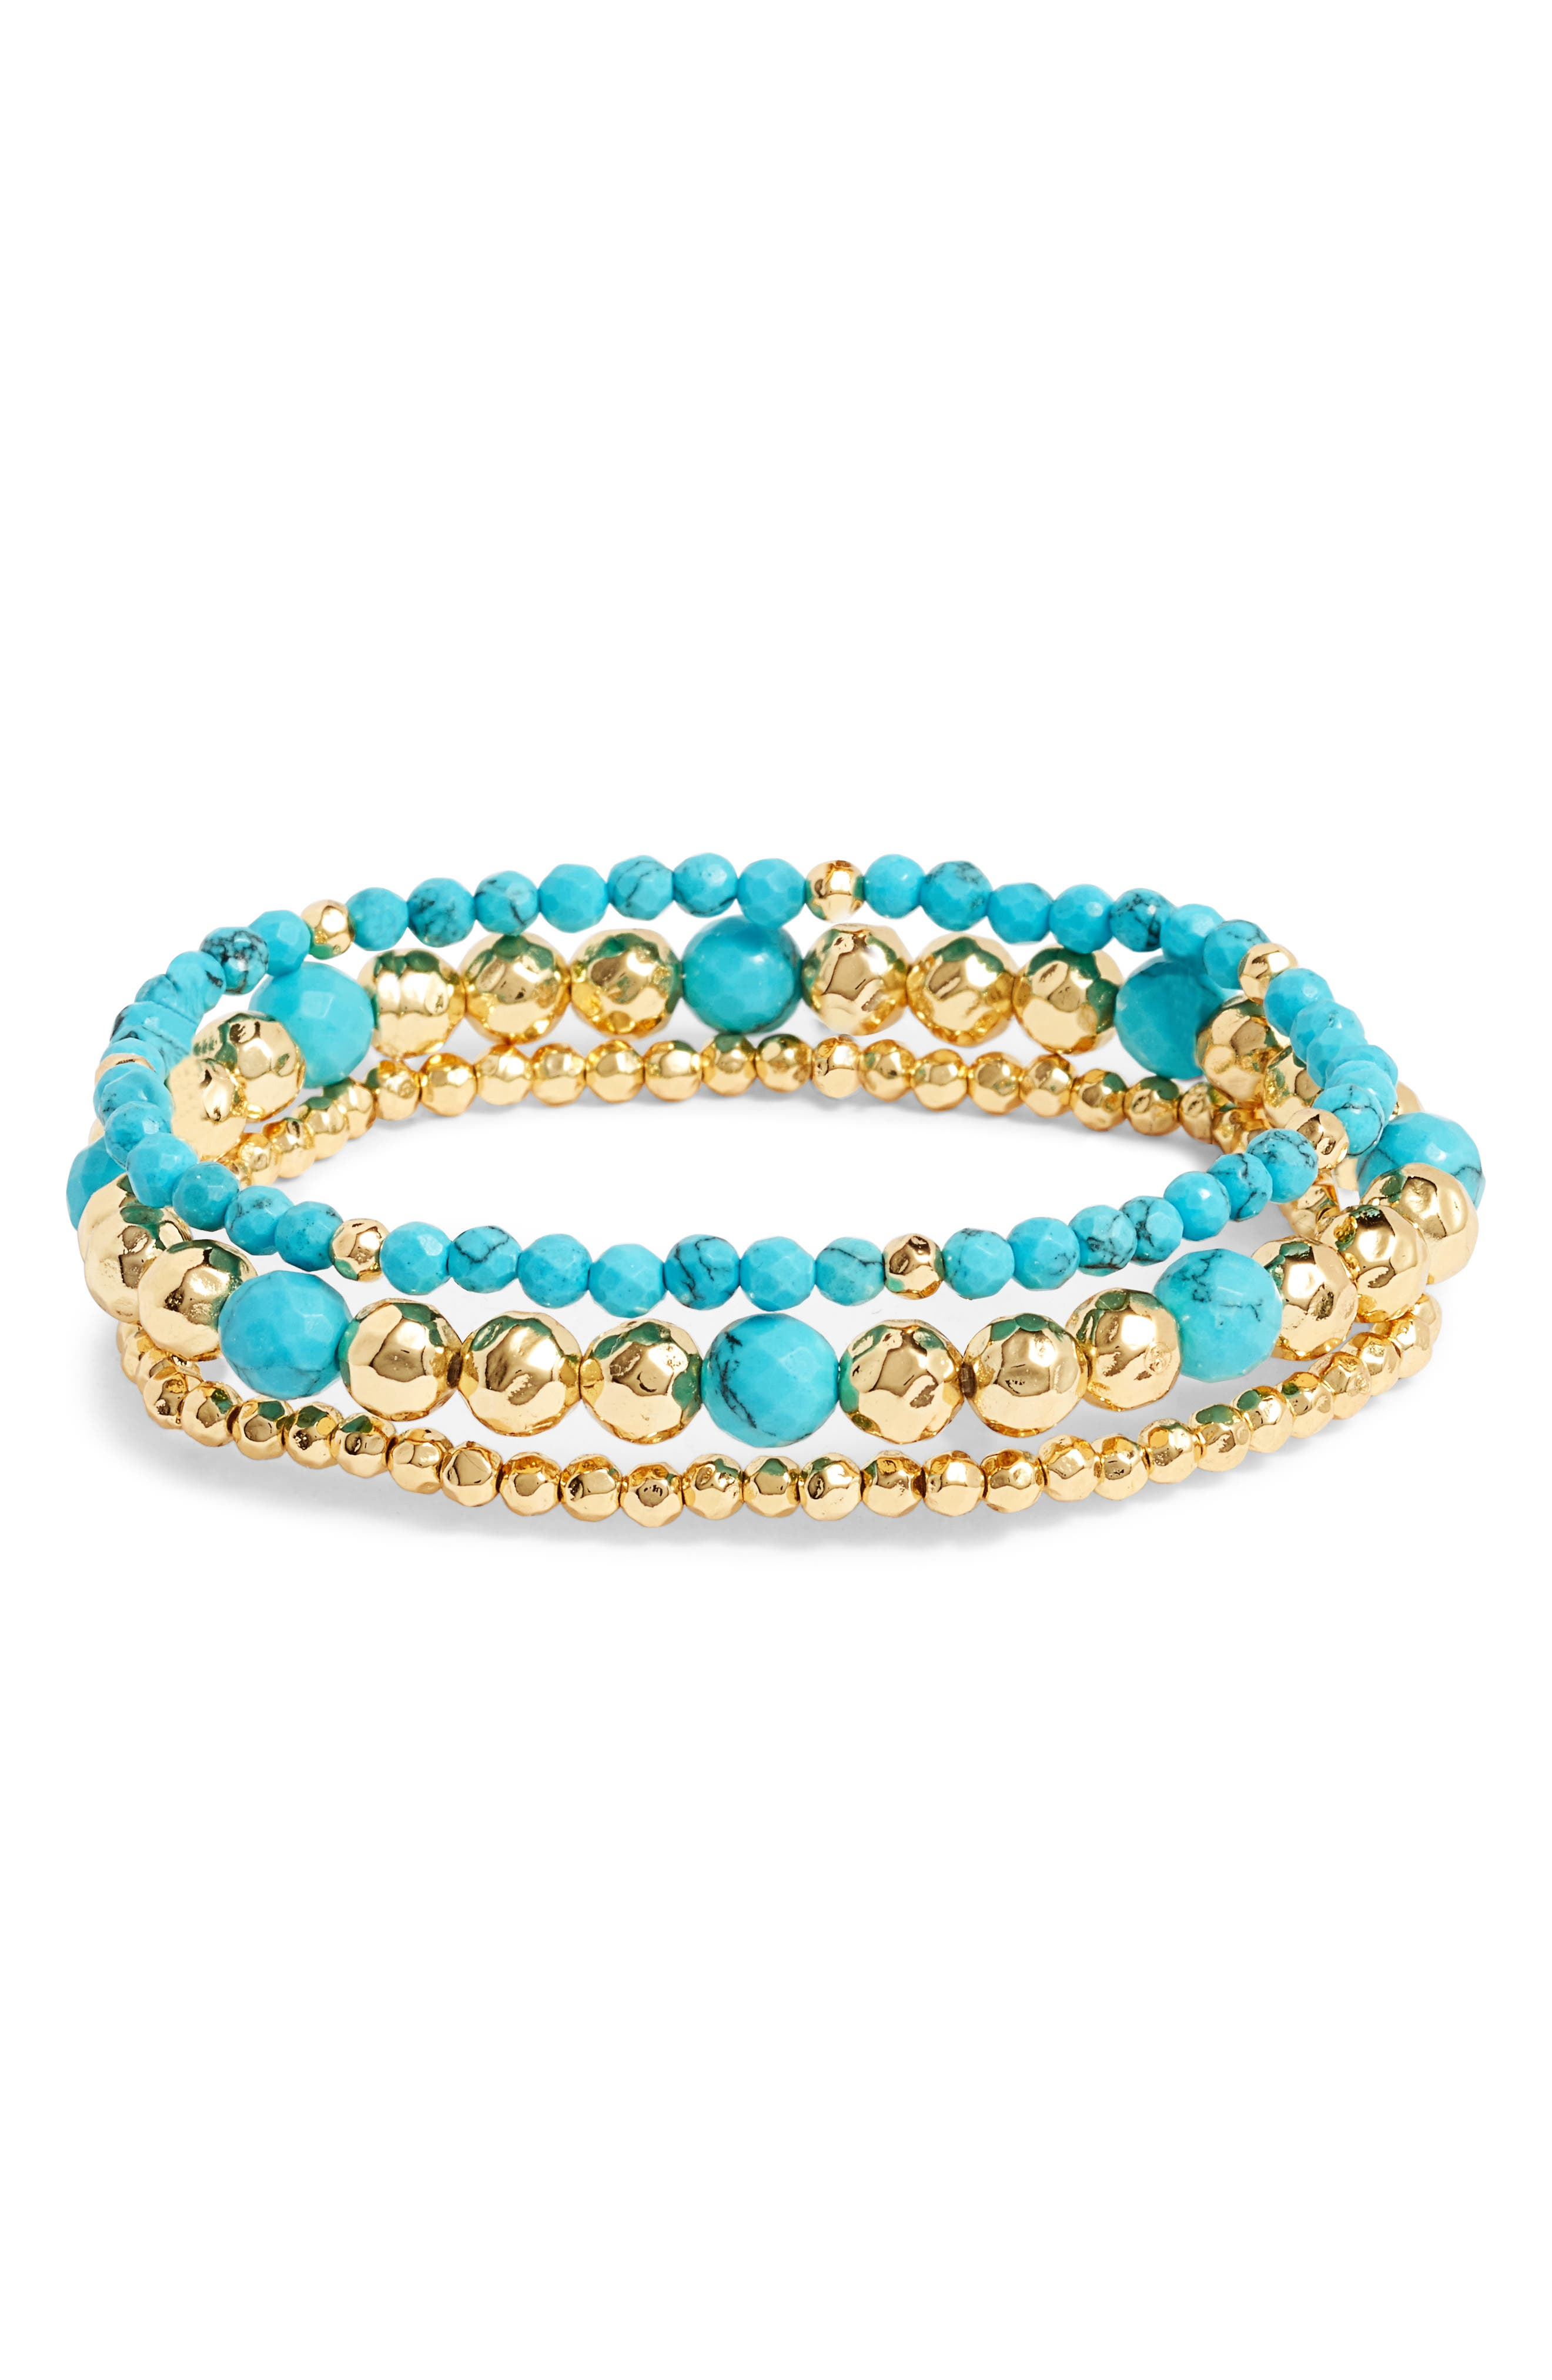 Gypset Set of 3 Bracelets,                         Main,                         color, Turquoise/ Gold